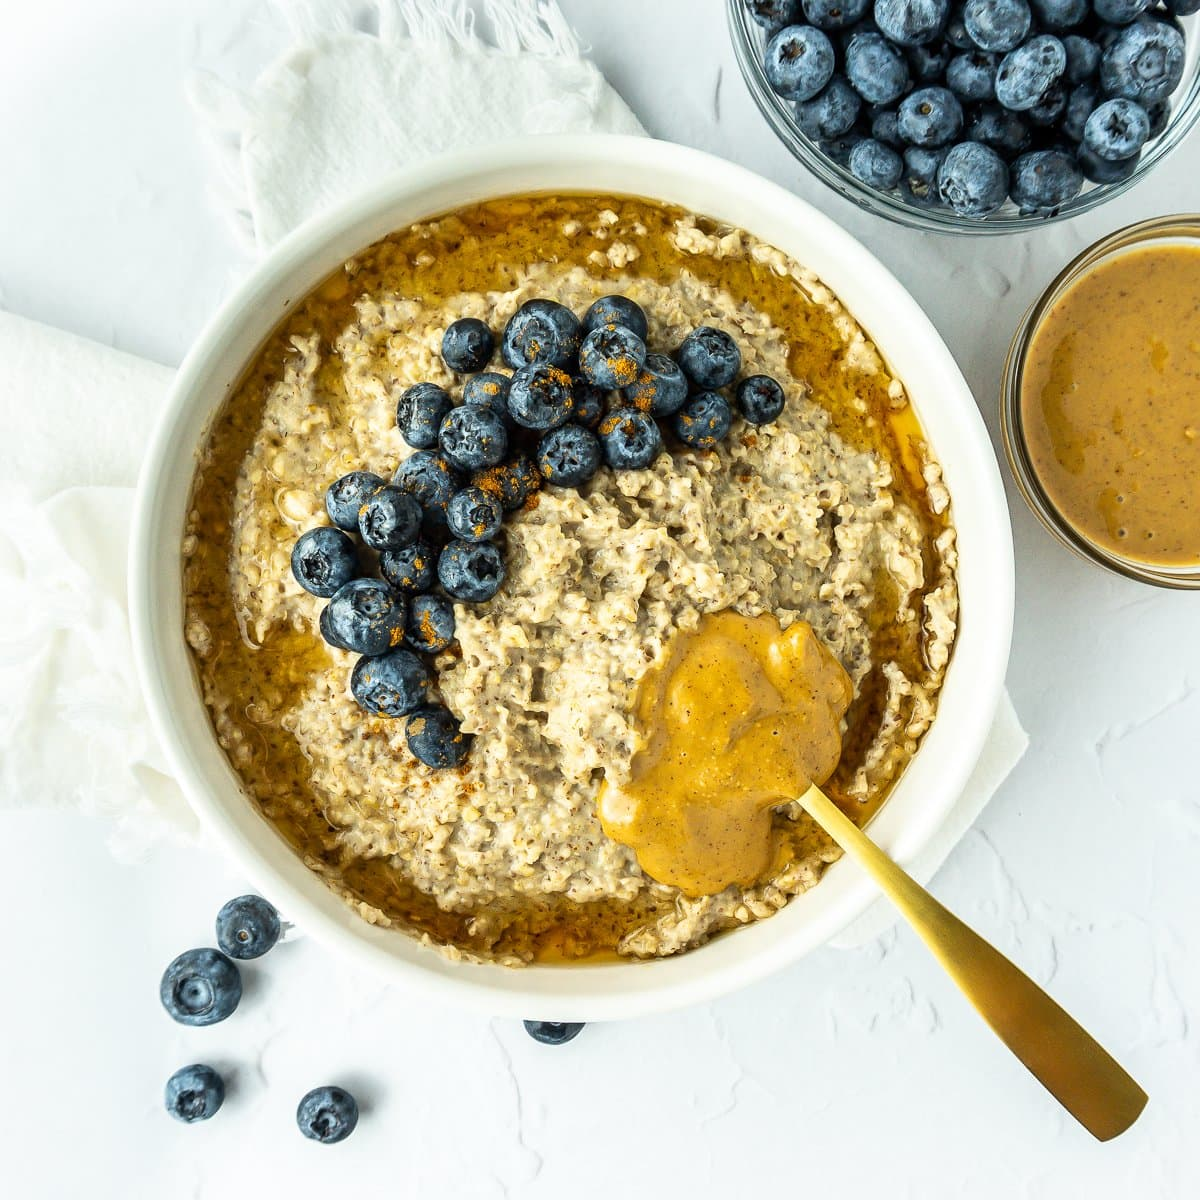 Bowl of PB Blueberry Oatmeal